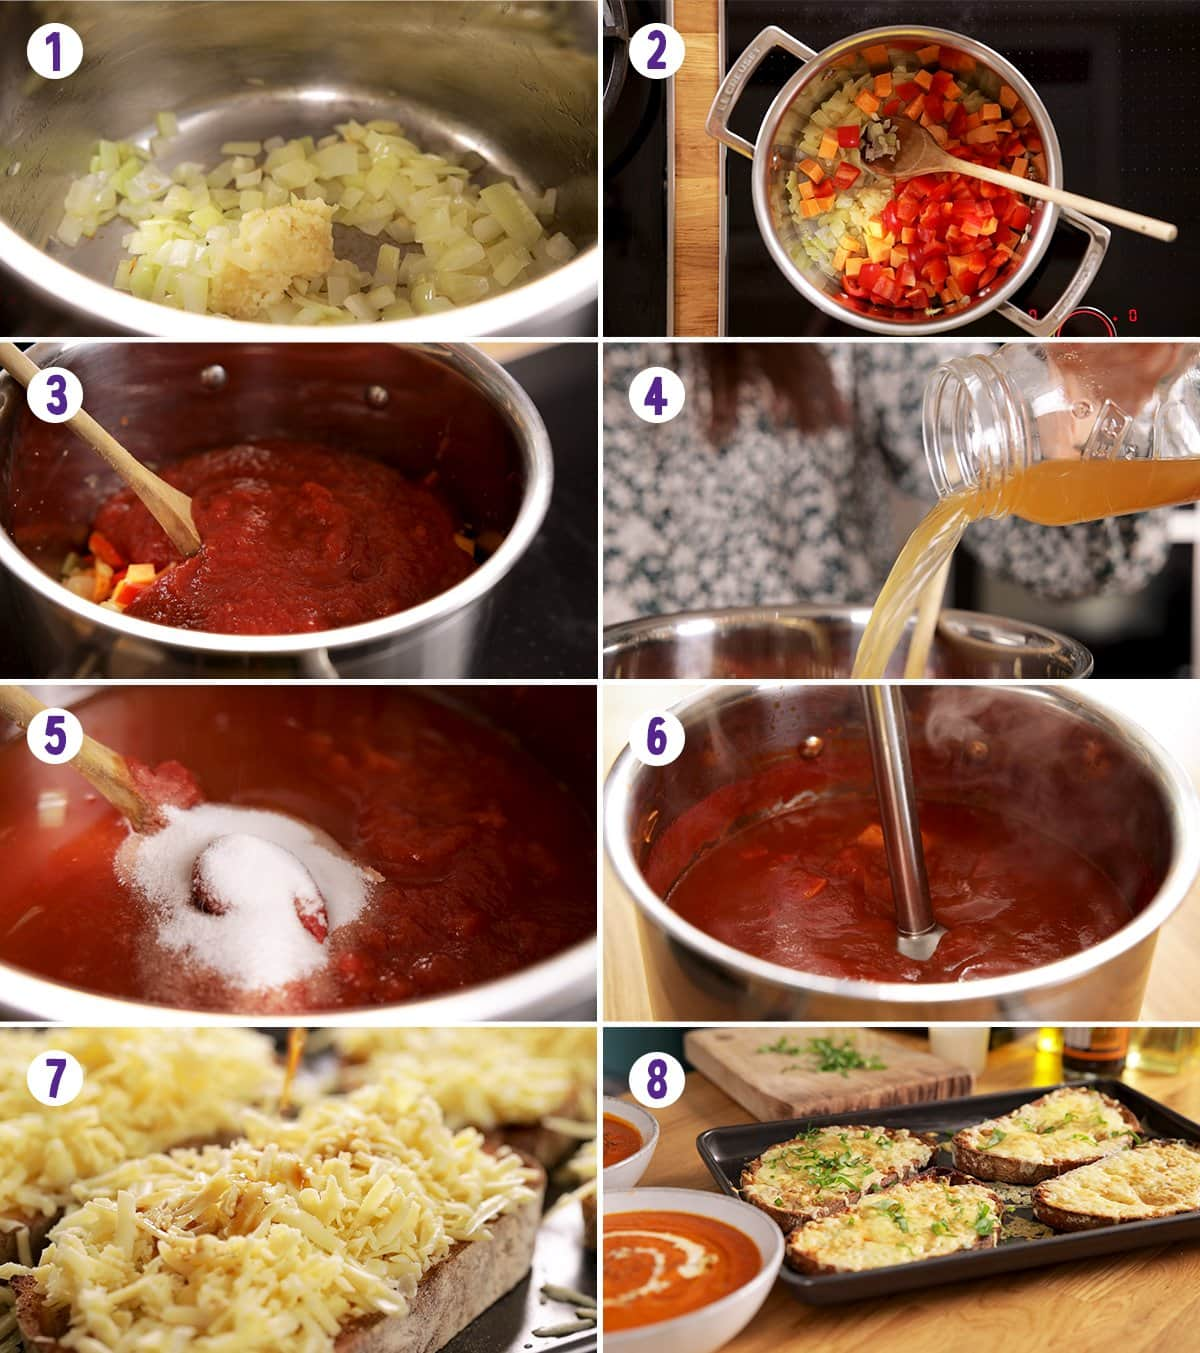 8 step collage showing how to make tomato soup with basil-topped cheese on toast